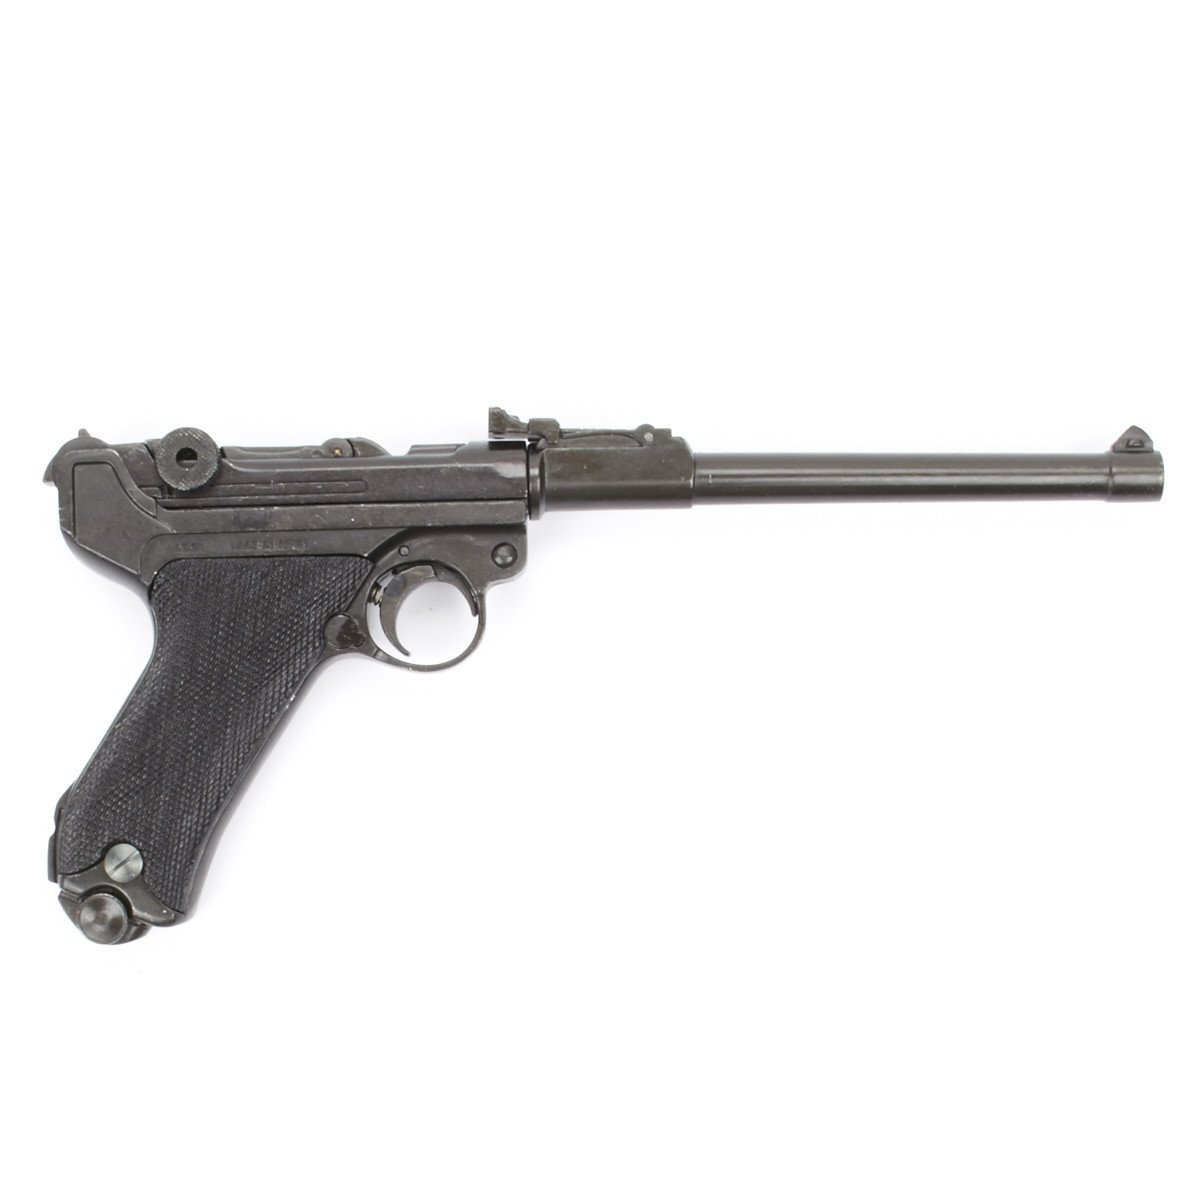 Replica Non–Firing Pistols & Rifles